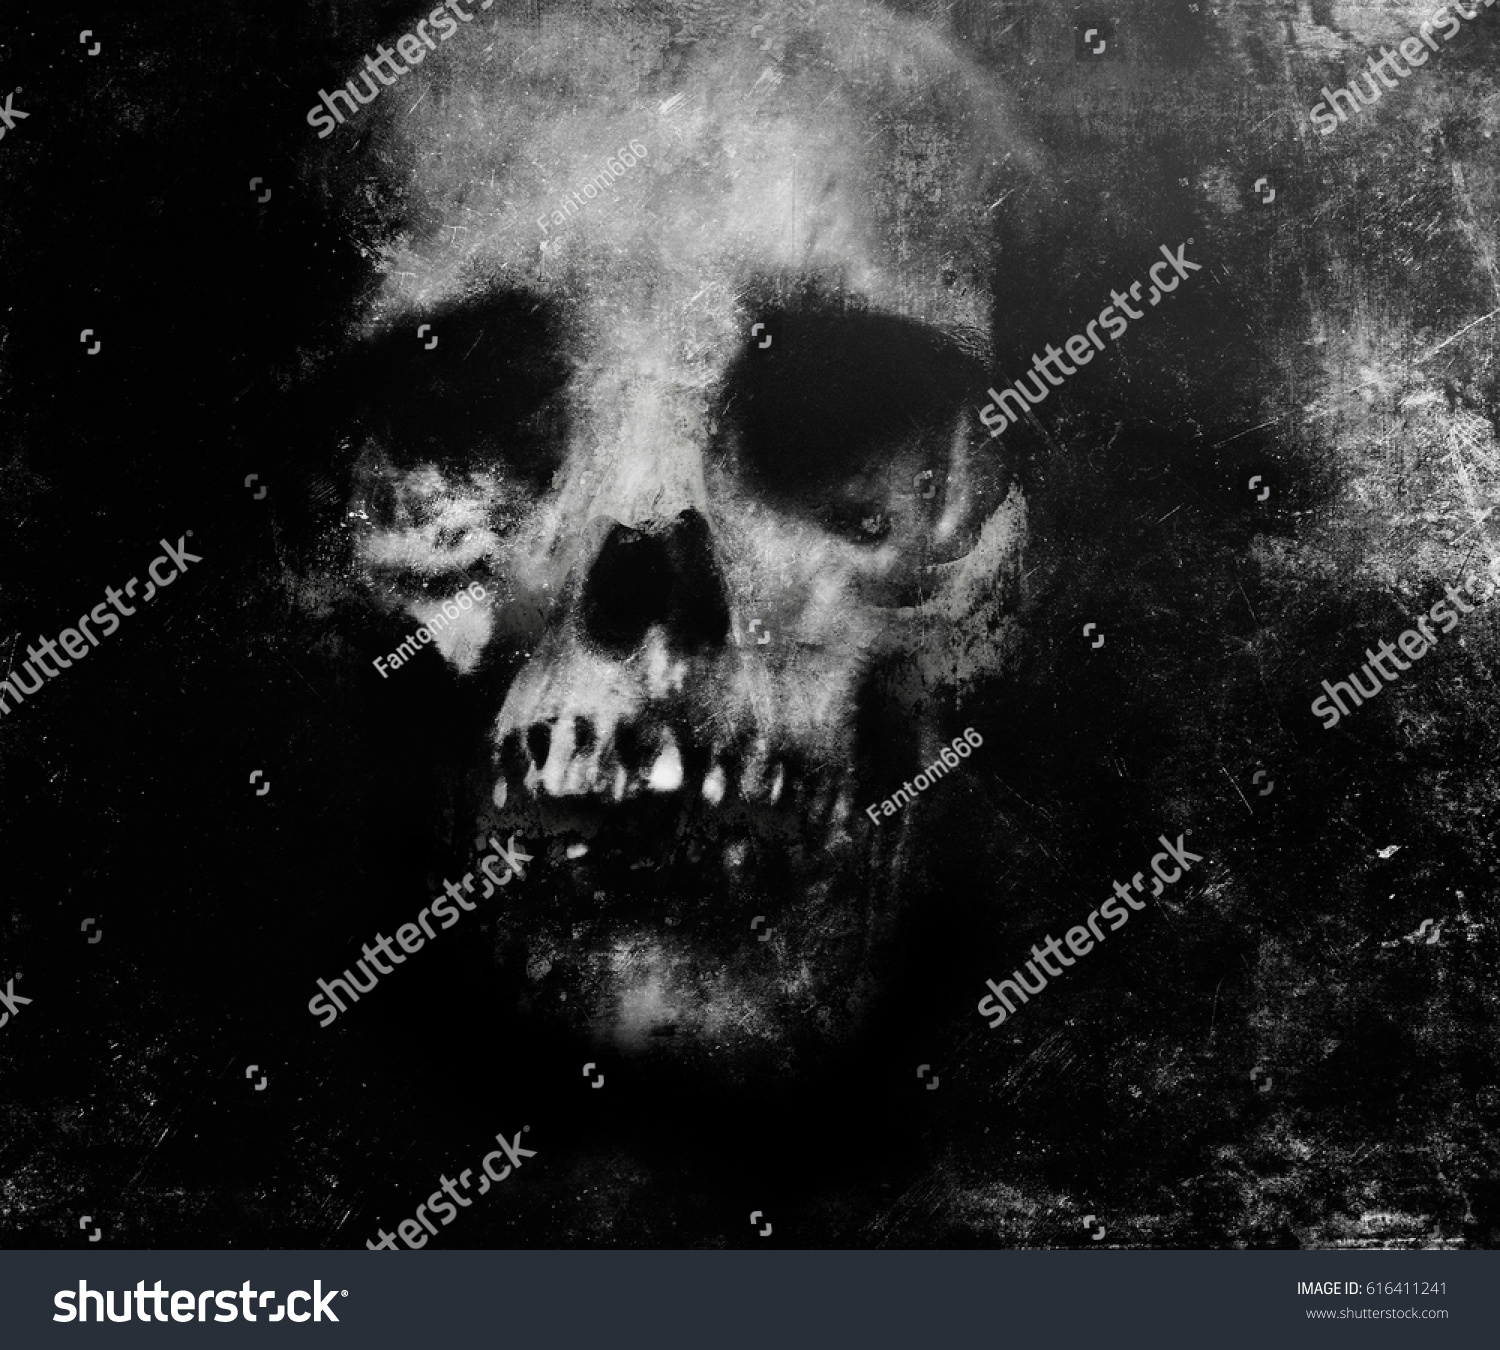 Wonderful Wallpaper Halloween Grunge - stock-photo-scary-grunge-wallpaper-halloween-background-with-spooky-skull-616411241  Pictures_232278.jpg